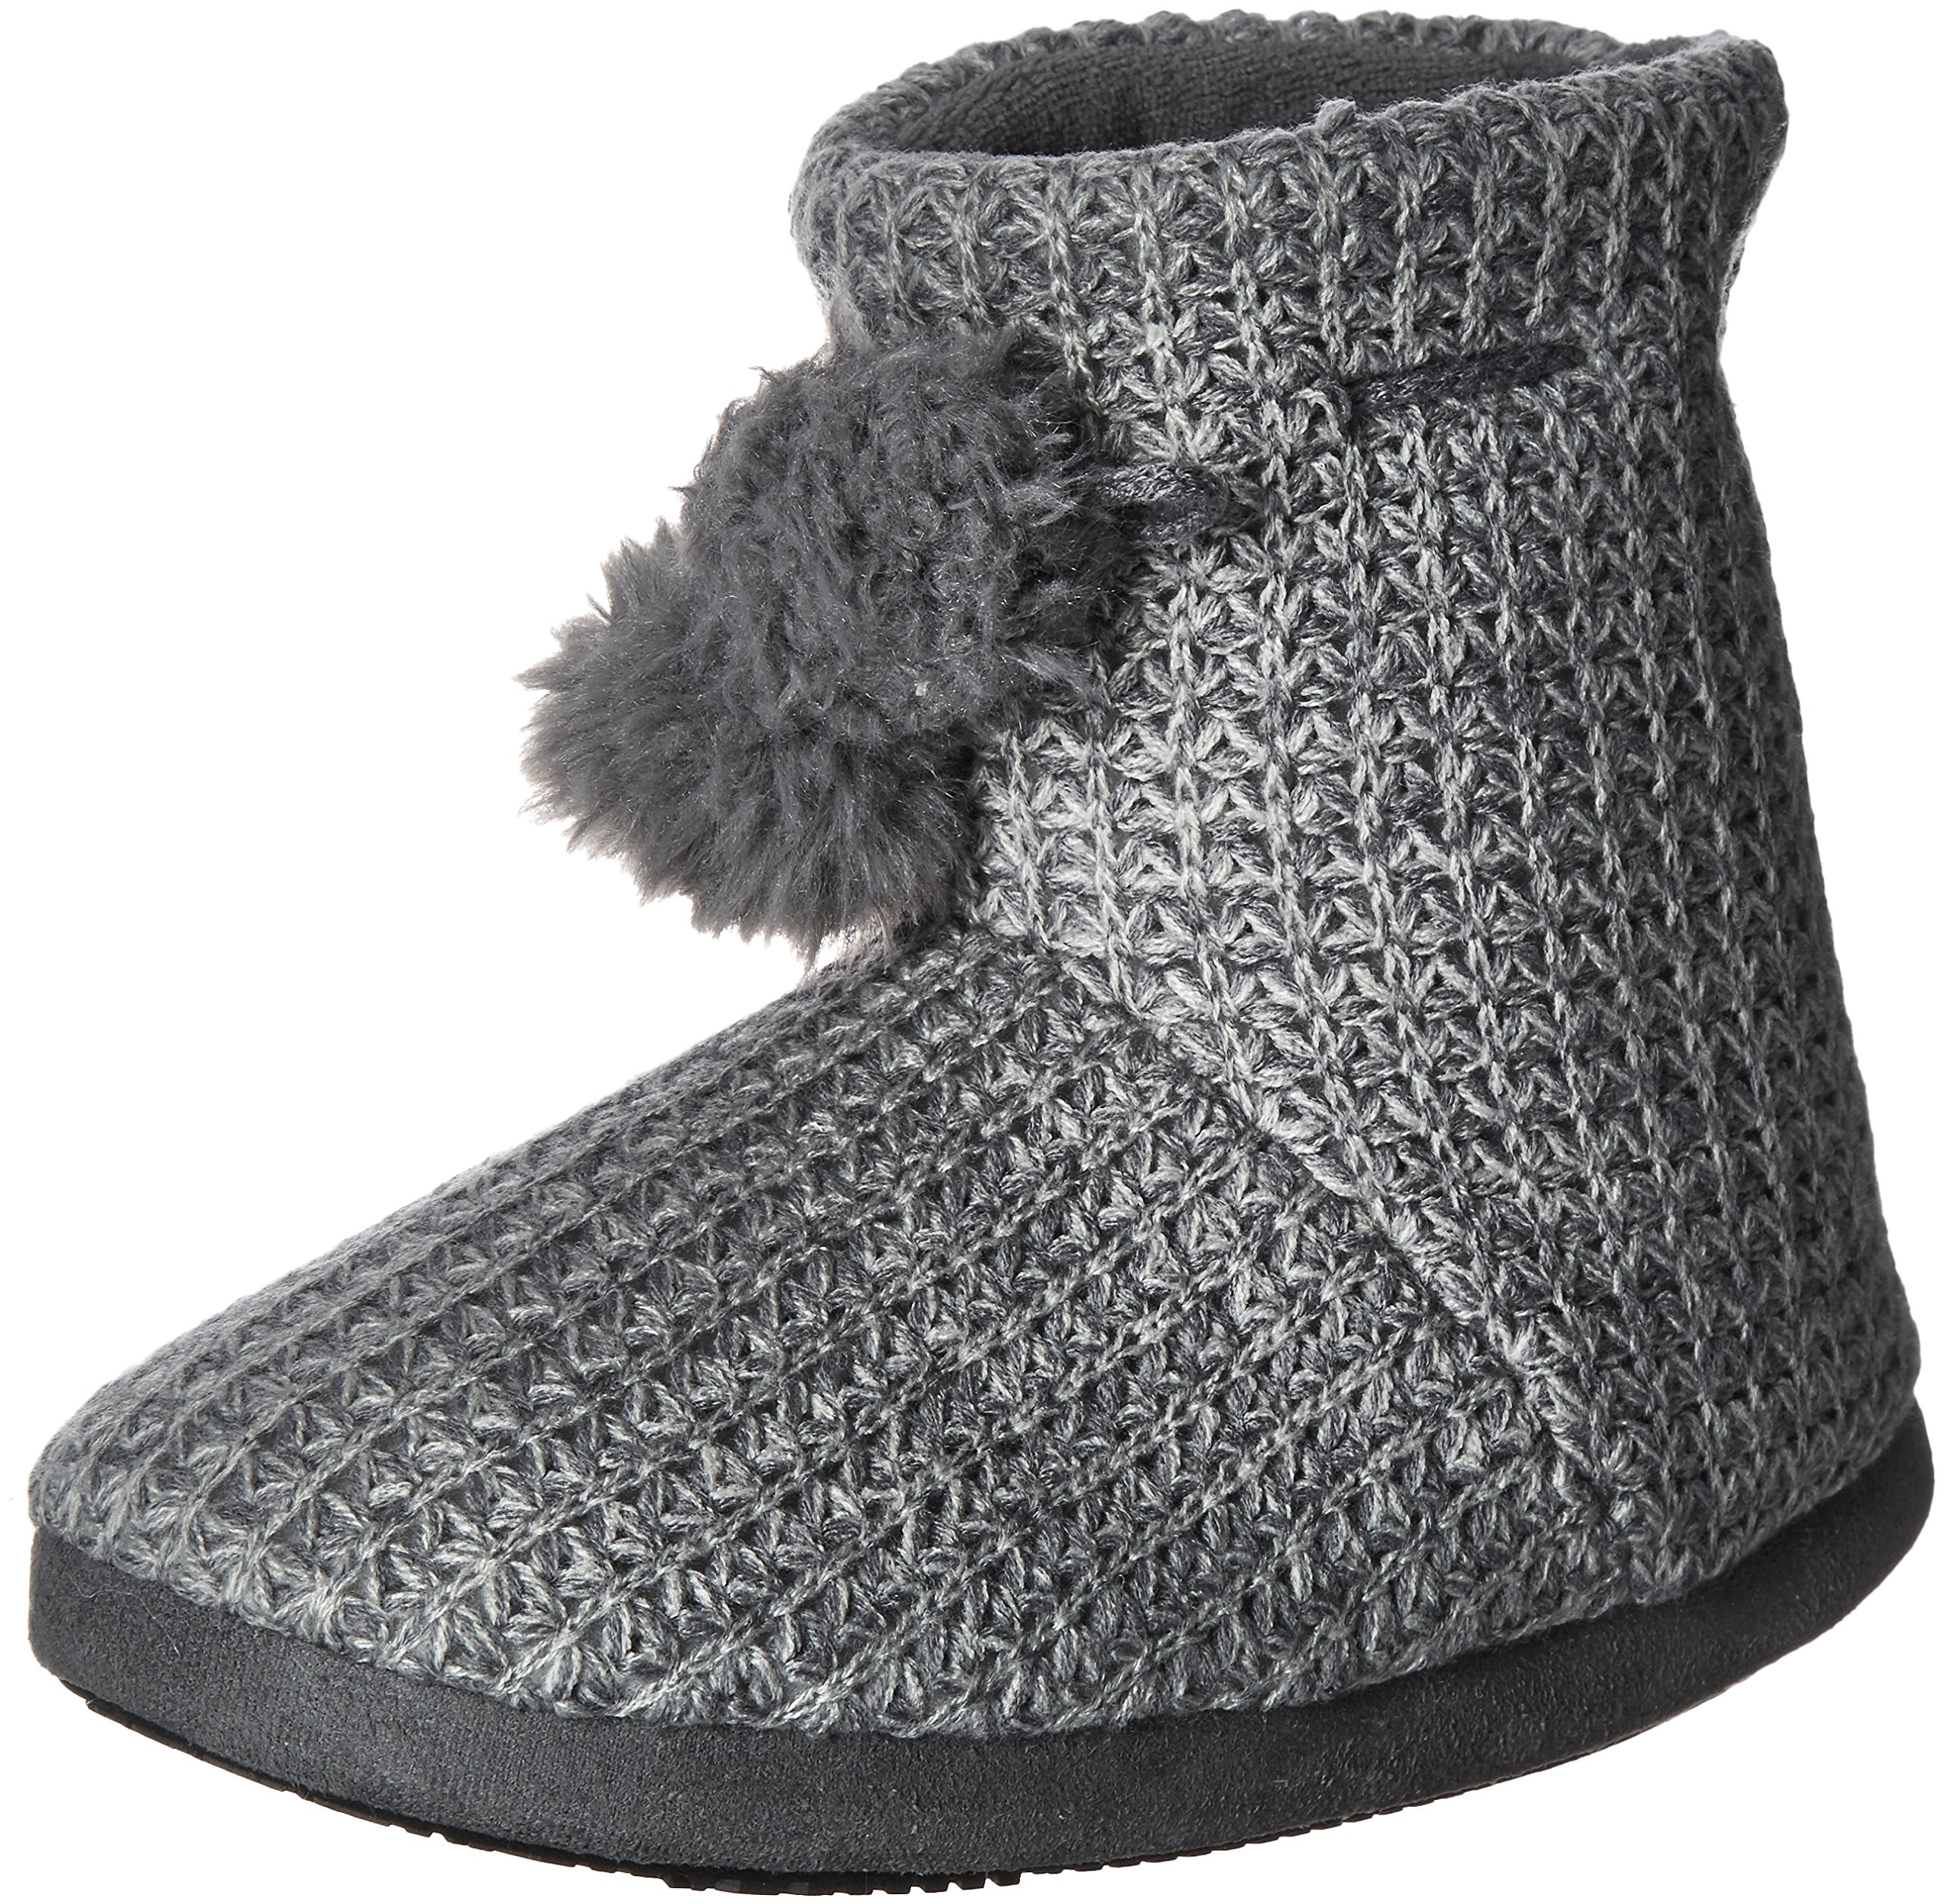 ISOTONER Women's Shaker Knit Myrna Boot Slipper, Charcoal Heather, Large/8-9 M US